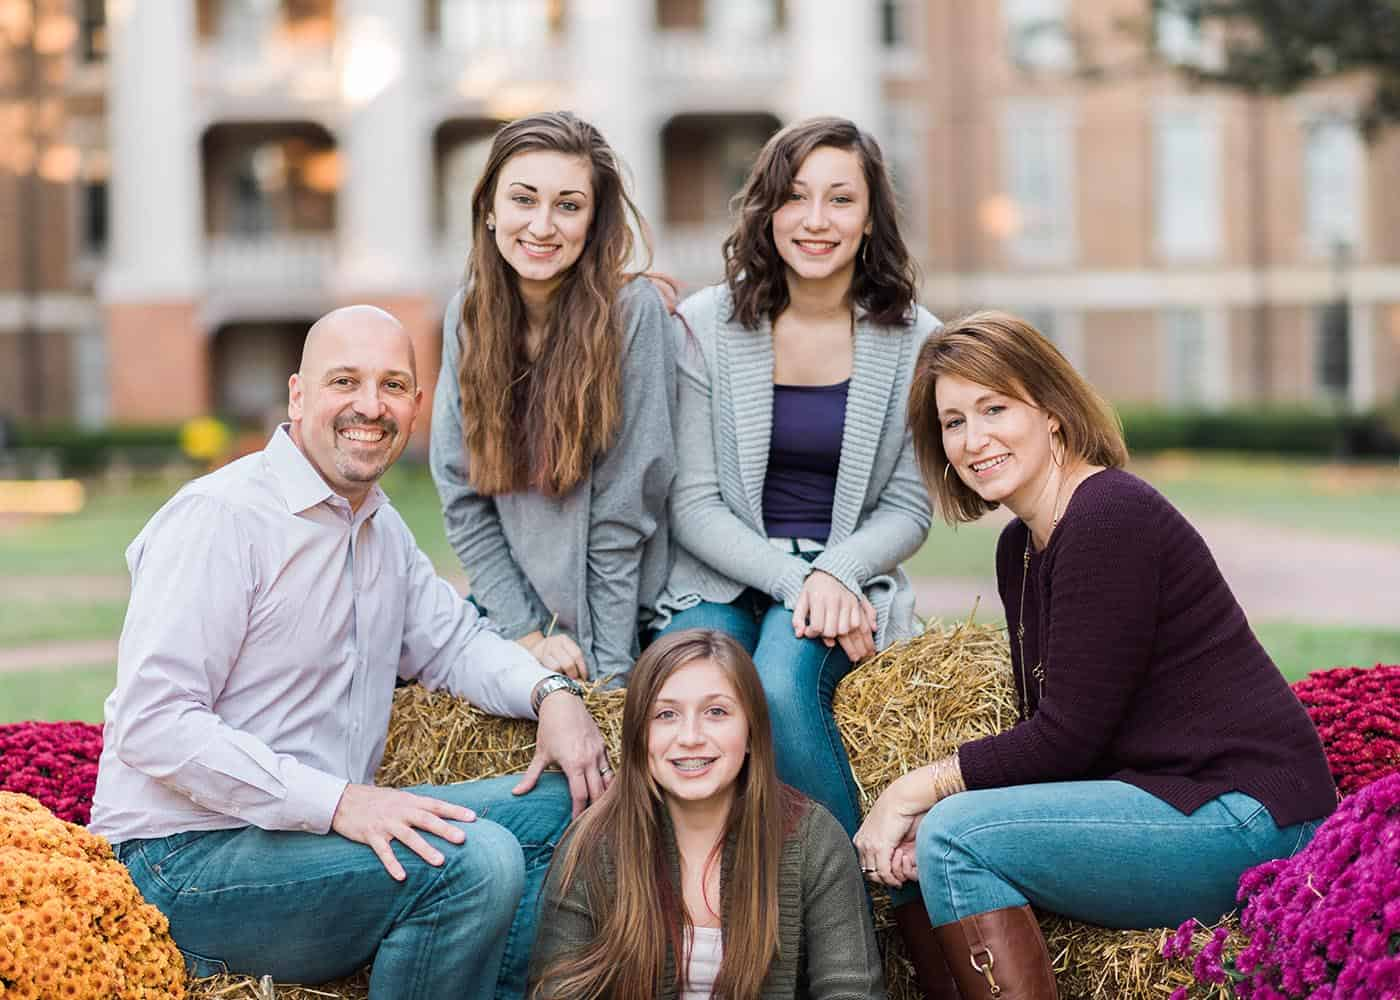 WPU president Dr. Brian Ralph pictured with his wife and three daughters.